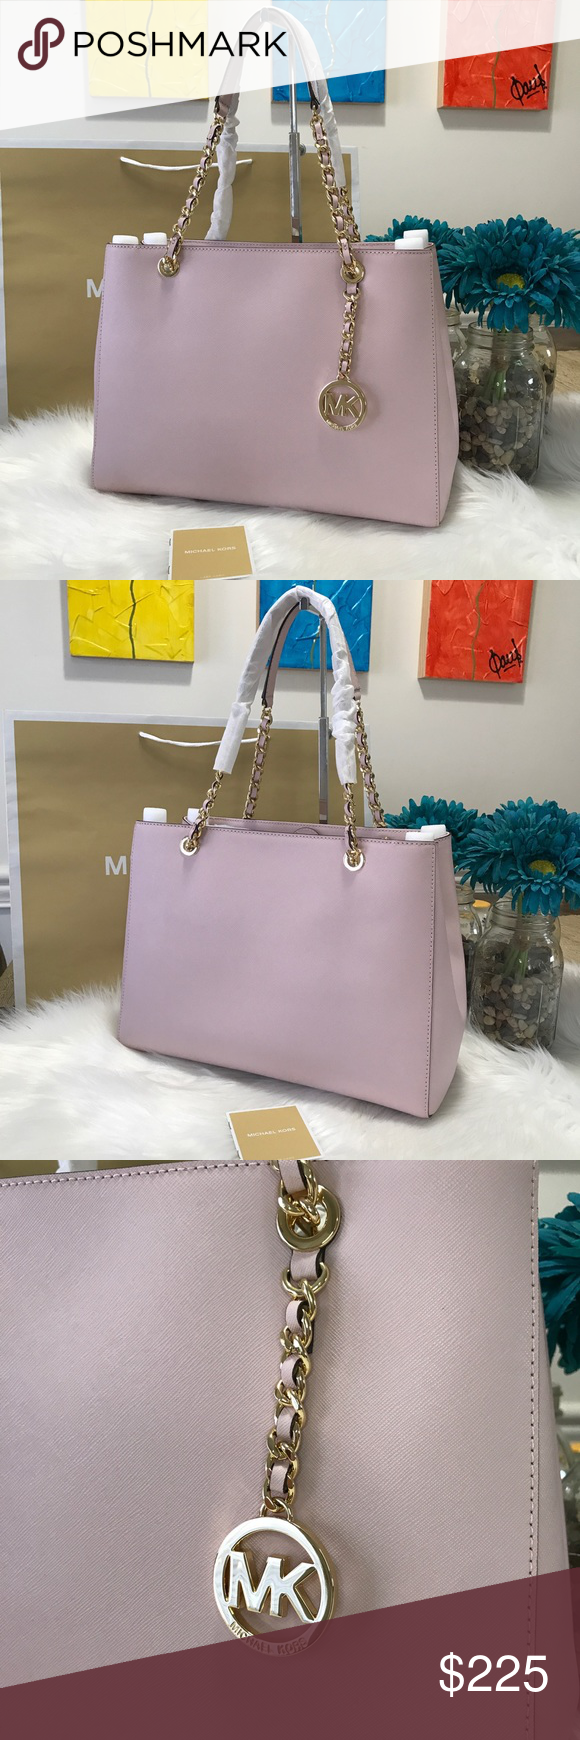 9fcf3a6fb25471 Michael Kors Susannah Tote Large Blossom Brand New 100% Authentic MK  MICHAEL KORS SAFFIANO